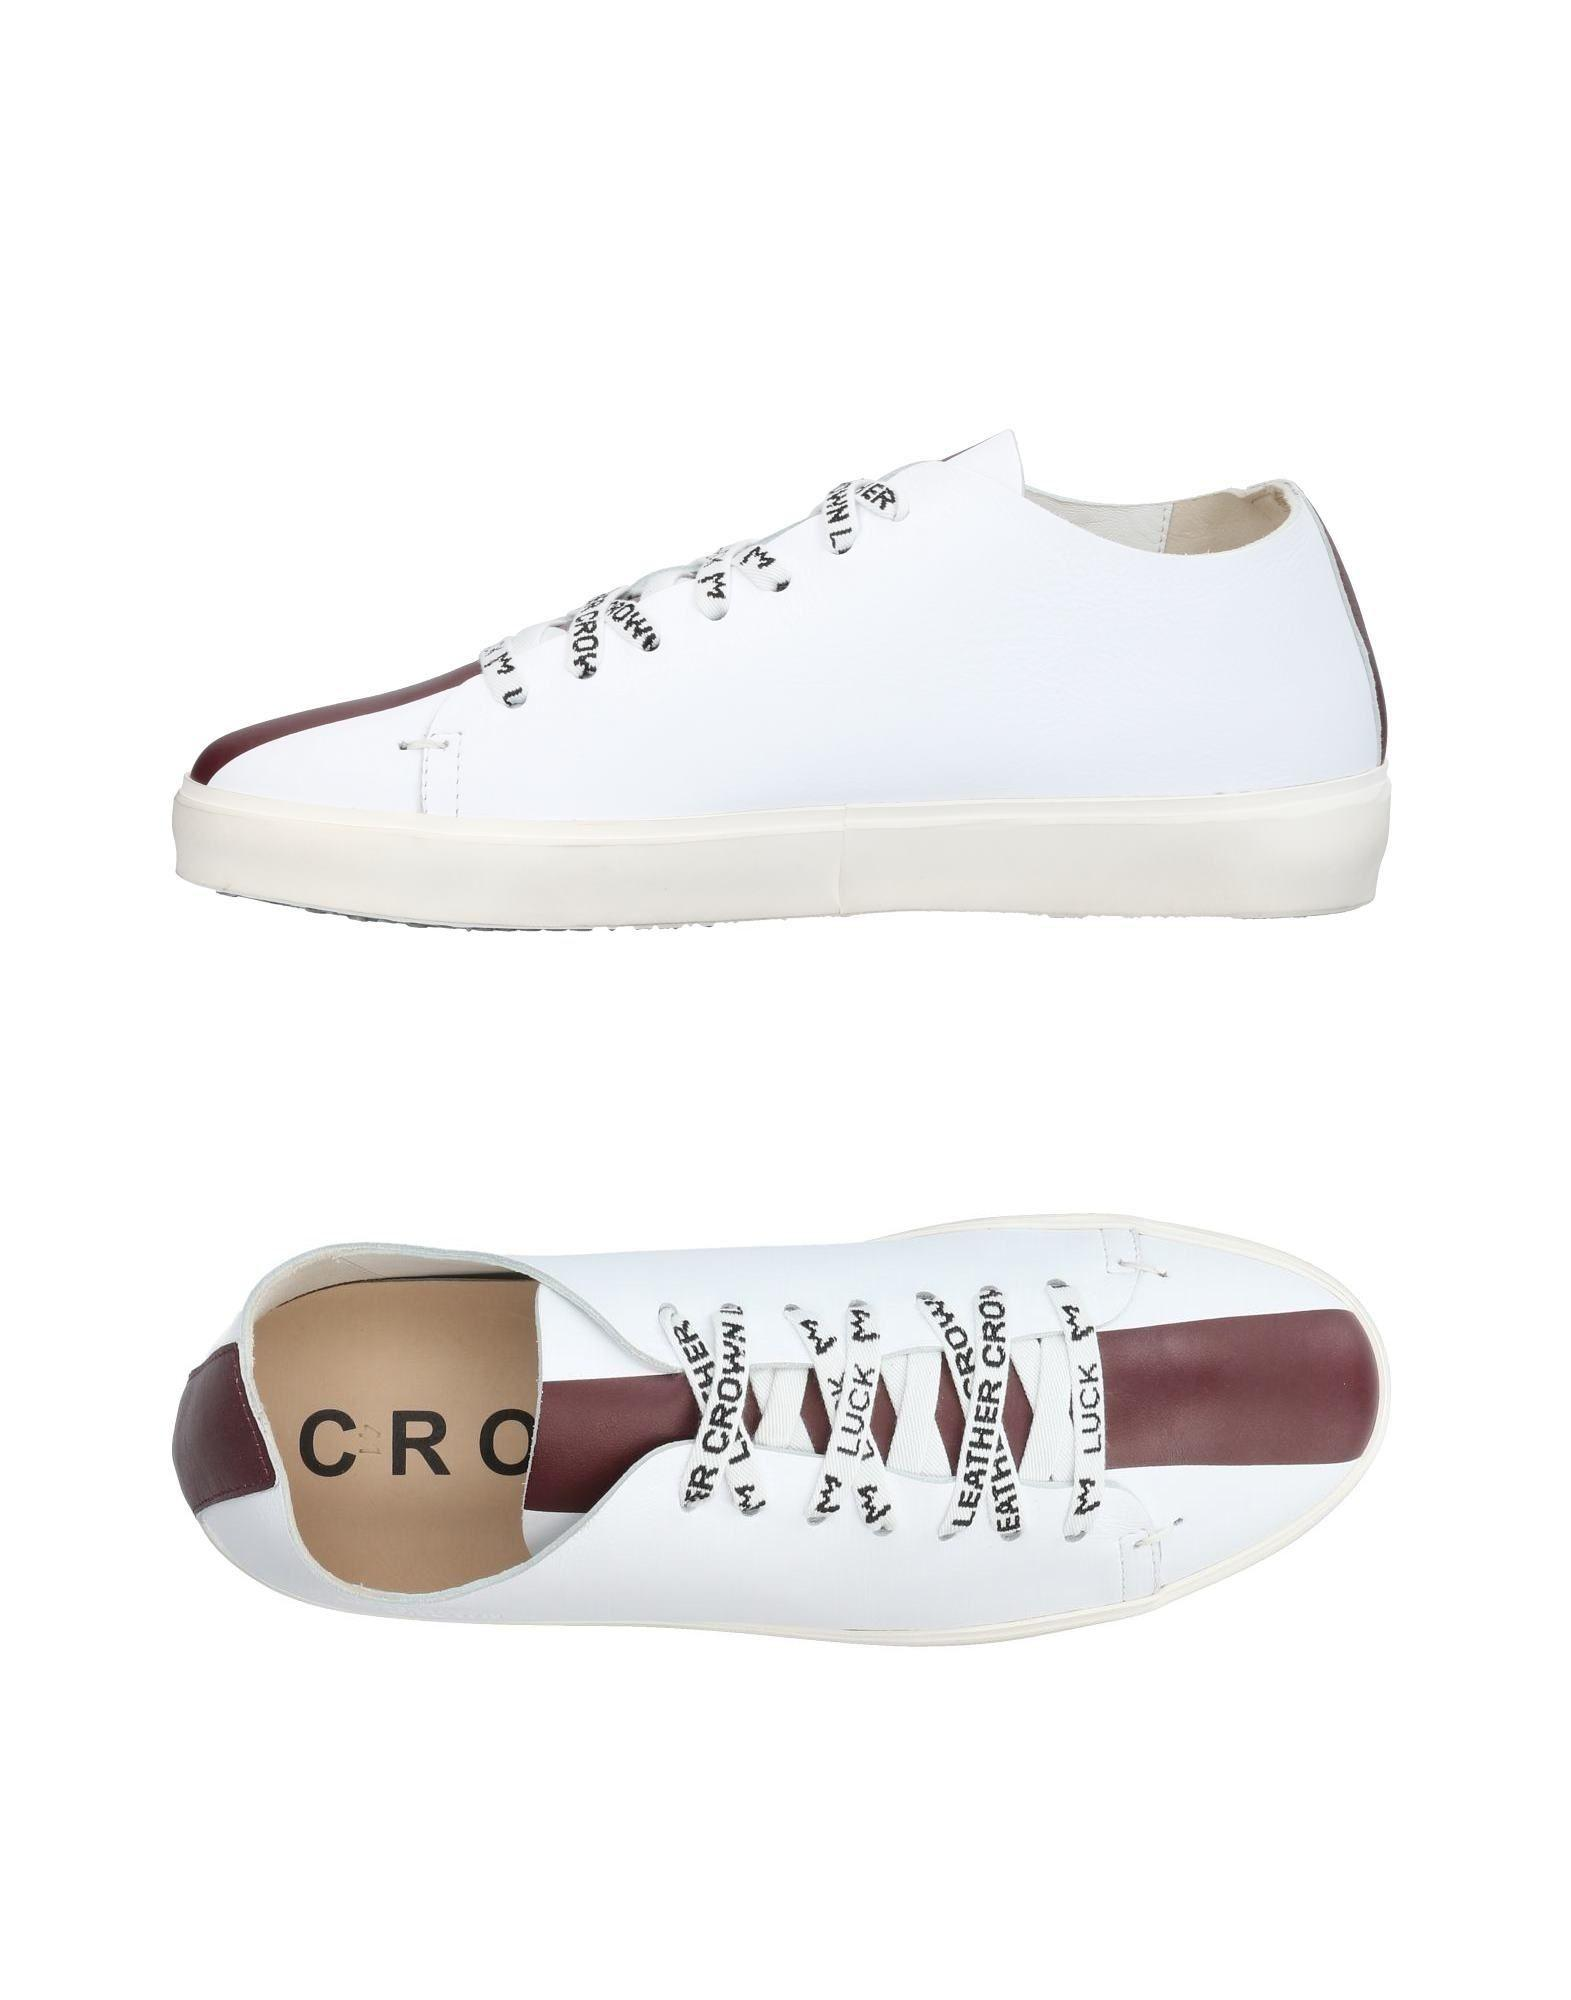 Leather Crown Sneakers In Maroon